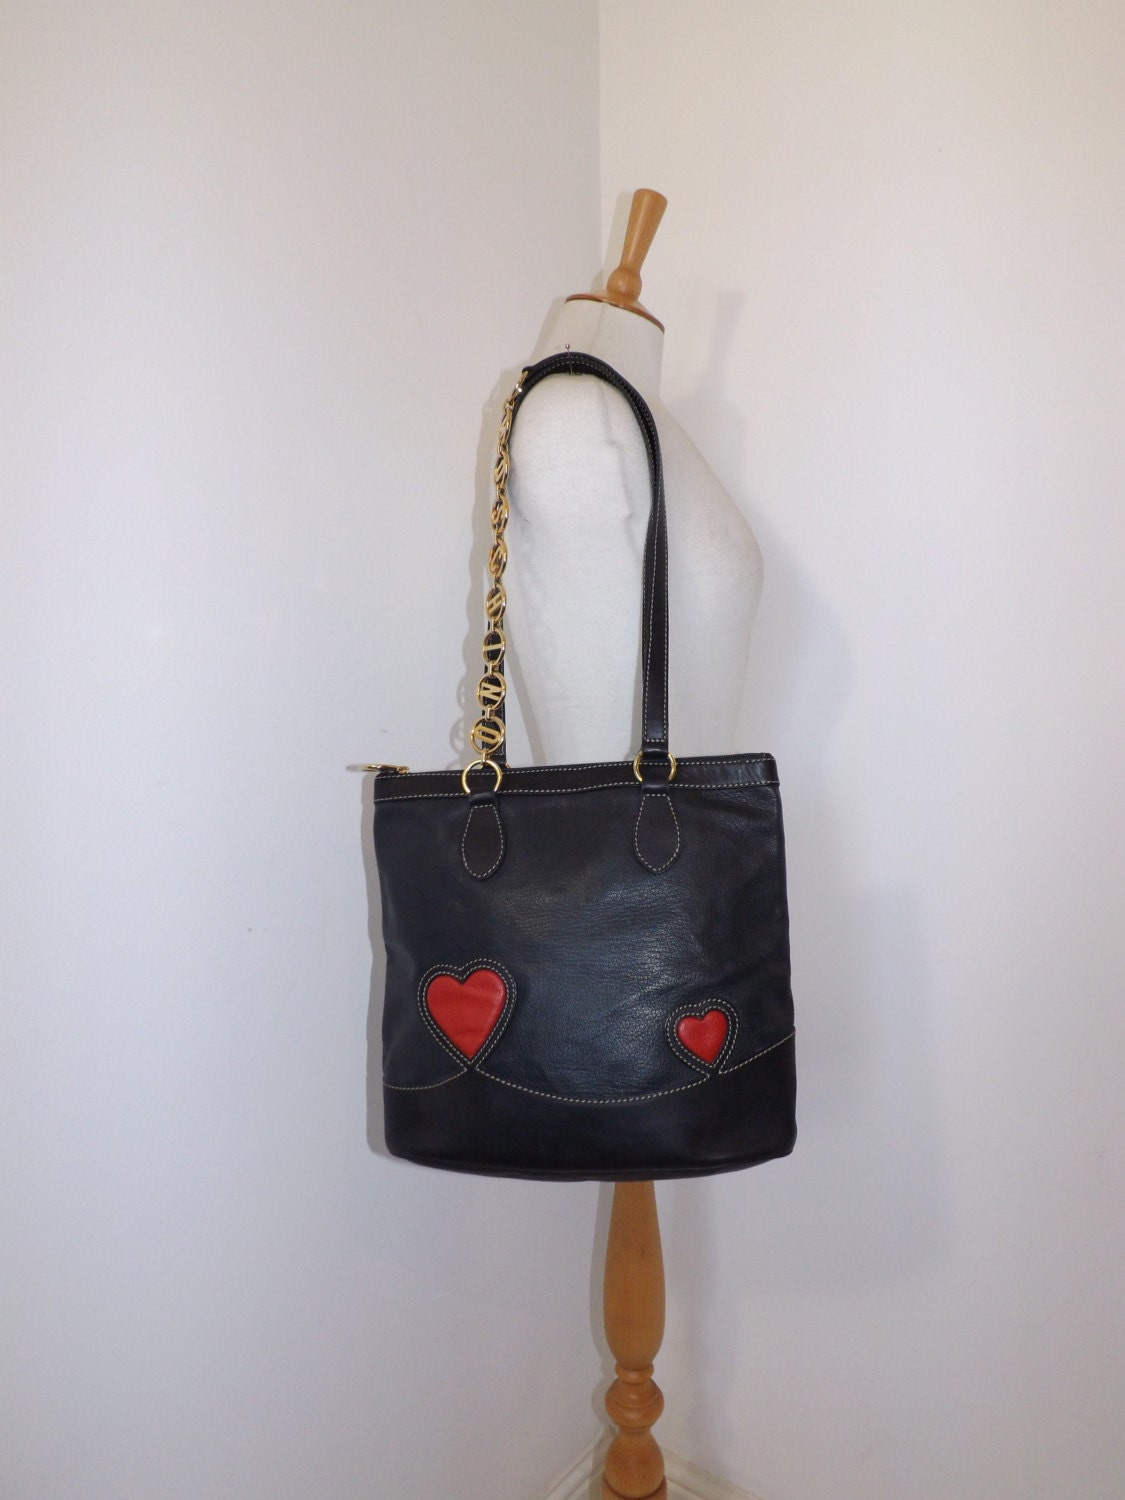 Vintage Moschino Redwall navy blue leather shoulder handbag designer tote bag red love heart detail